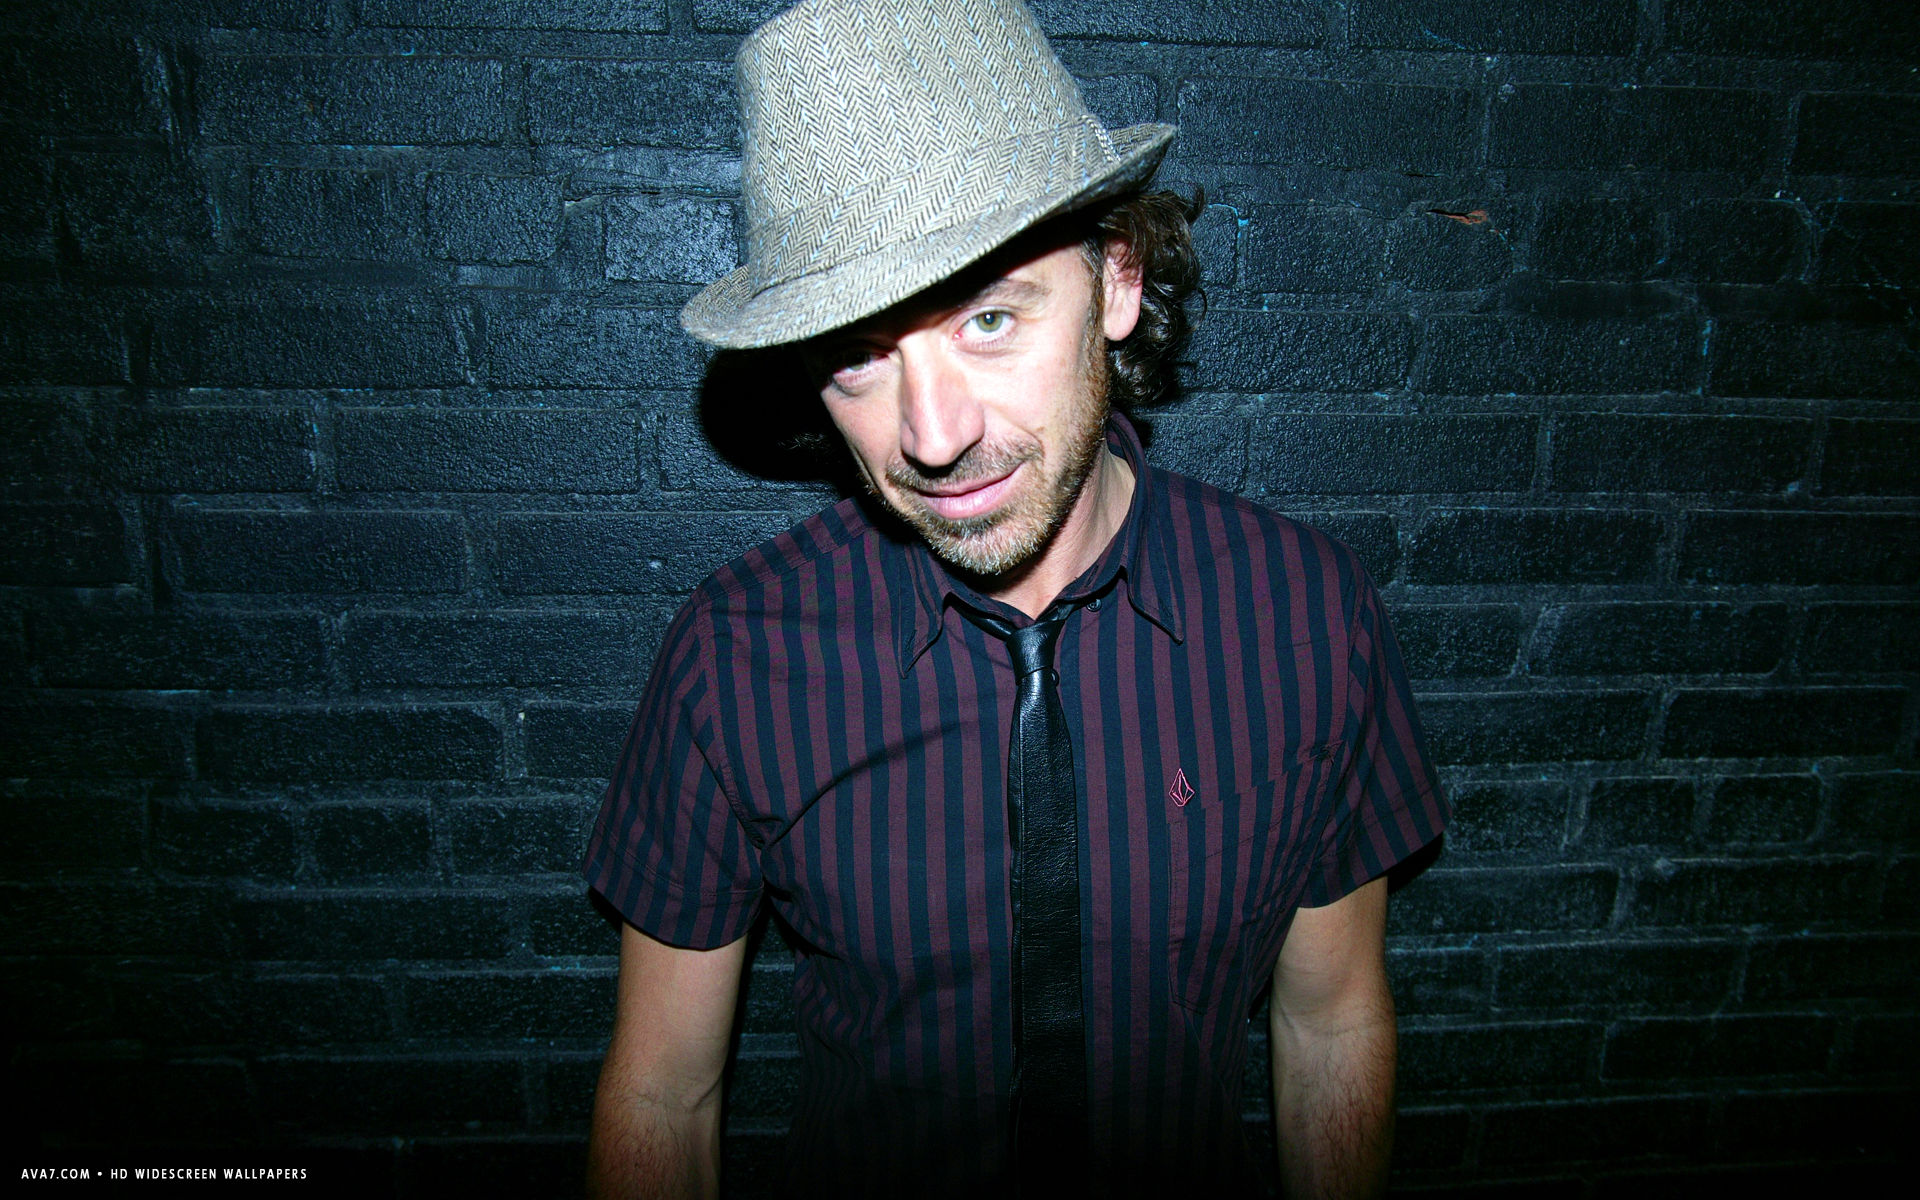 benny benassi dj disc jockey music hd widescreen wallpaper dj 1920x1200